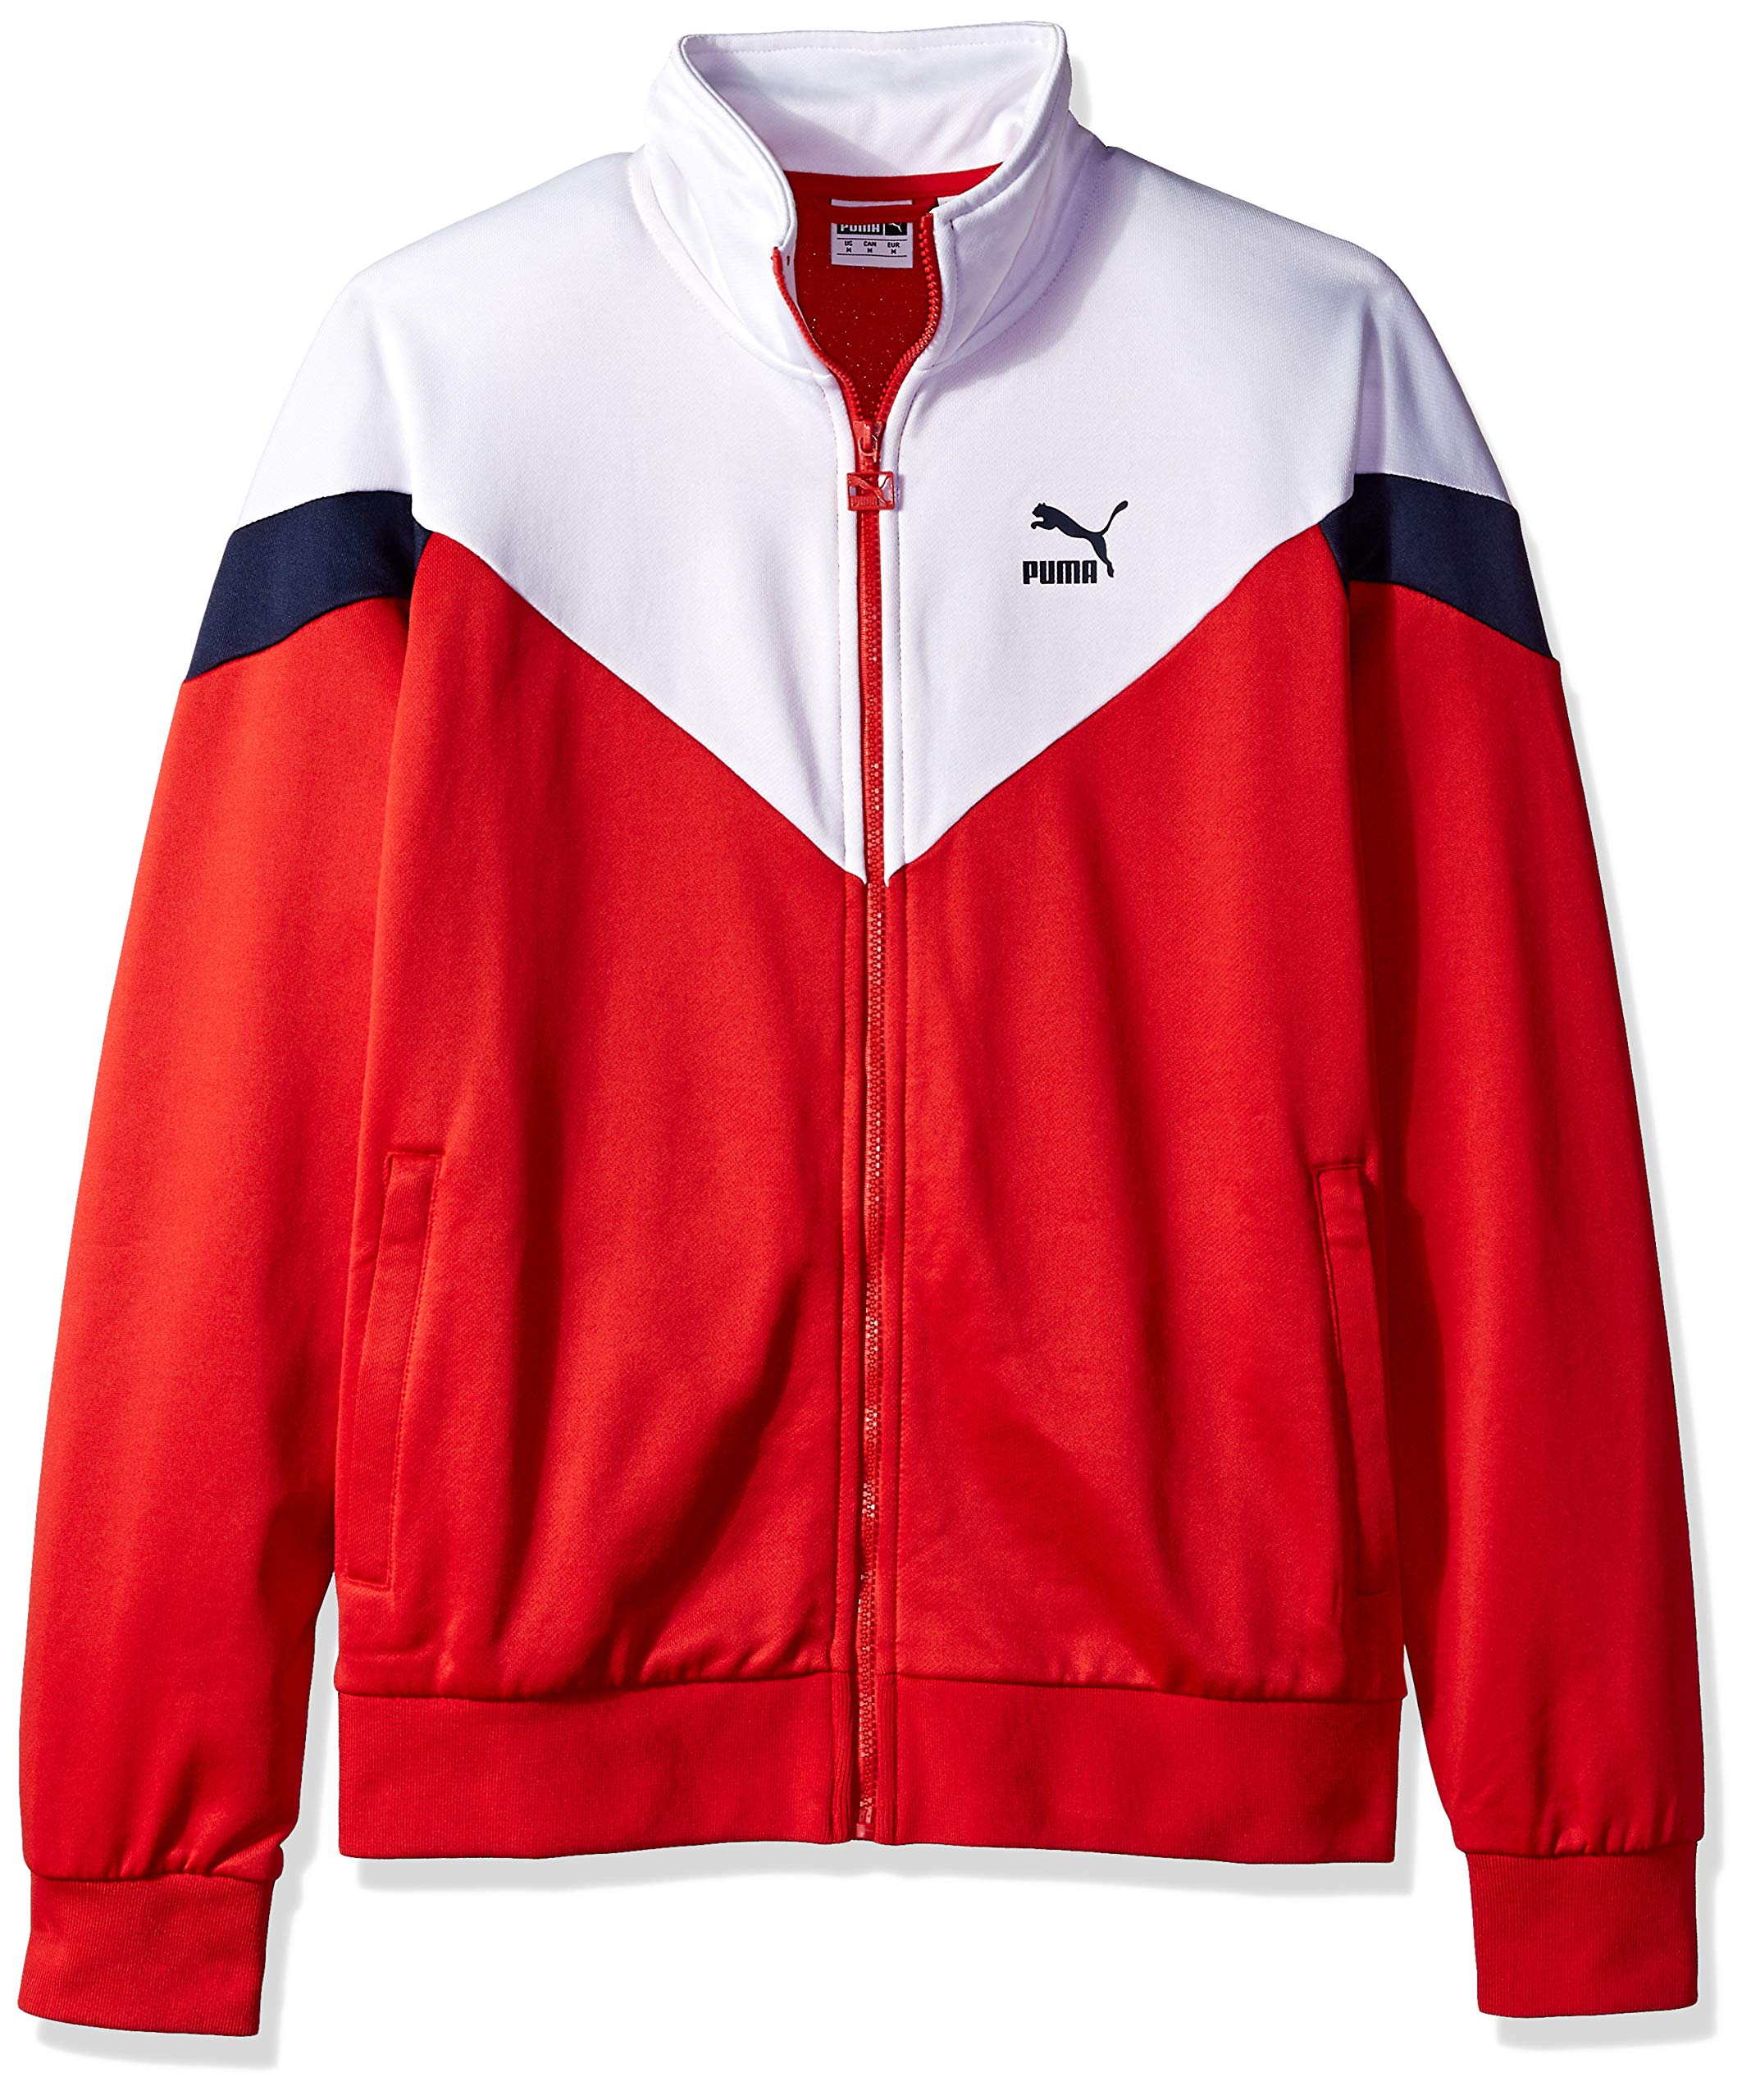 PUMA Men's MCS Track Jacket, high Risk red, X-Large by PUMA